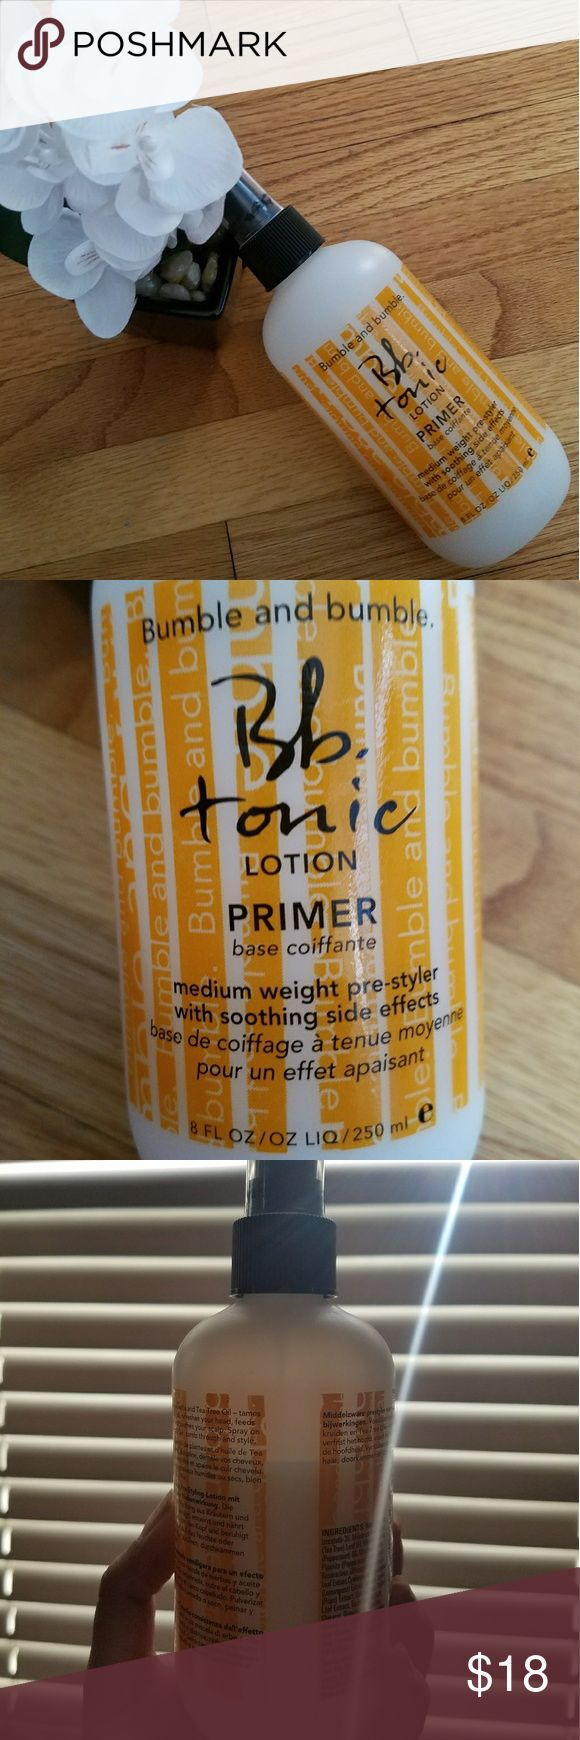 Bumble and Bumble Tonic Lotion Bb tonic lotion primer spray, smells amazing! Leaves hair so soft and helps minimize frizz when air drying -- at least in my case. I have medium length hair, color processed, and layered.  Bottle is 2/3 full put of 8 fl oz. Sephora Makeup